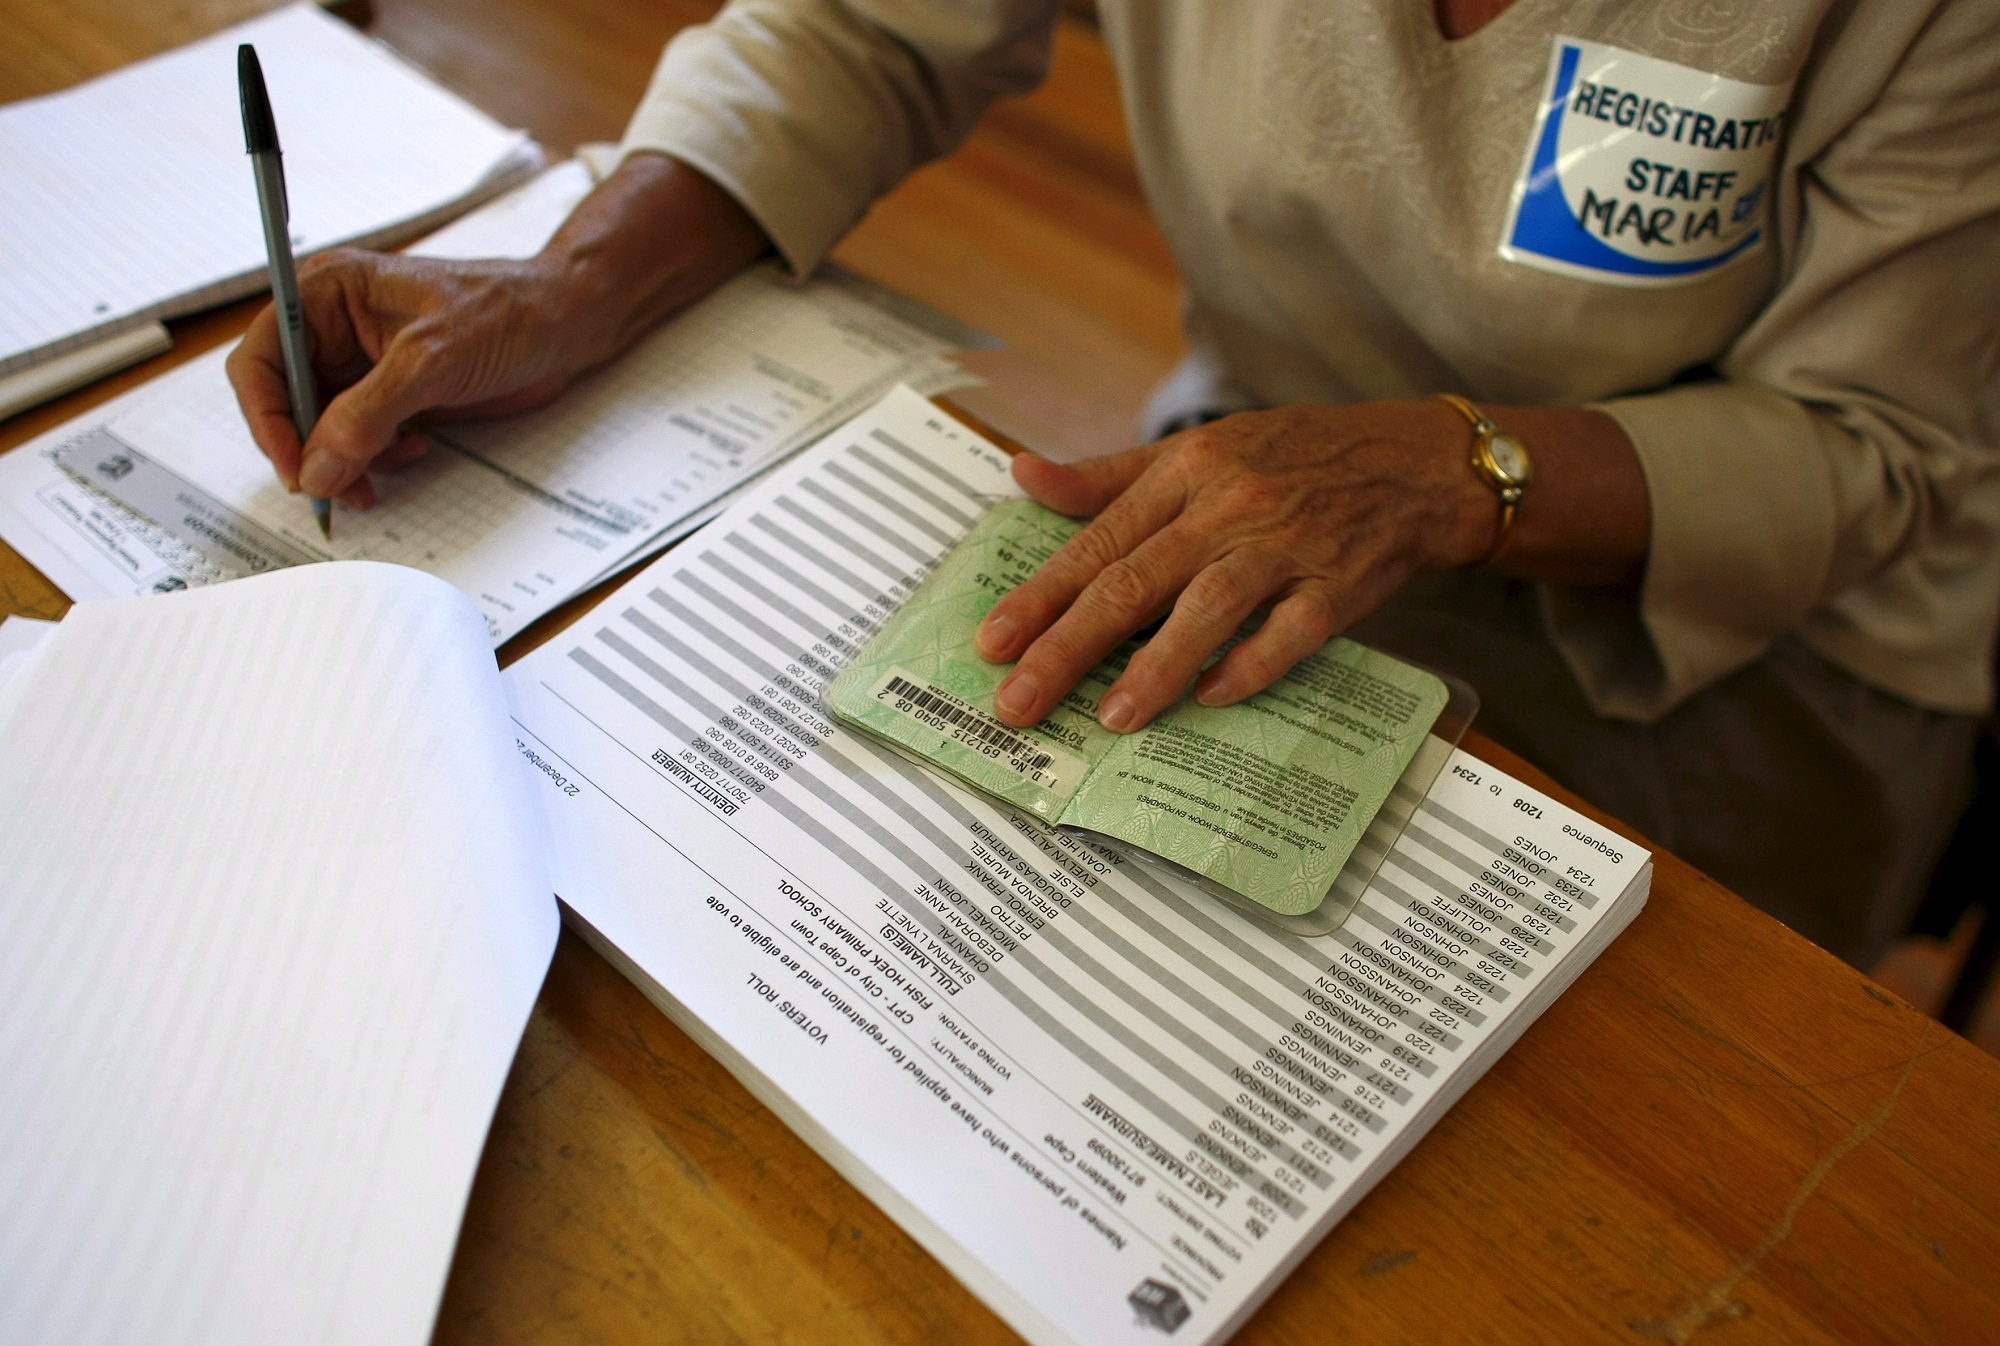 DA welcomes announcement of voter registration weekend